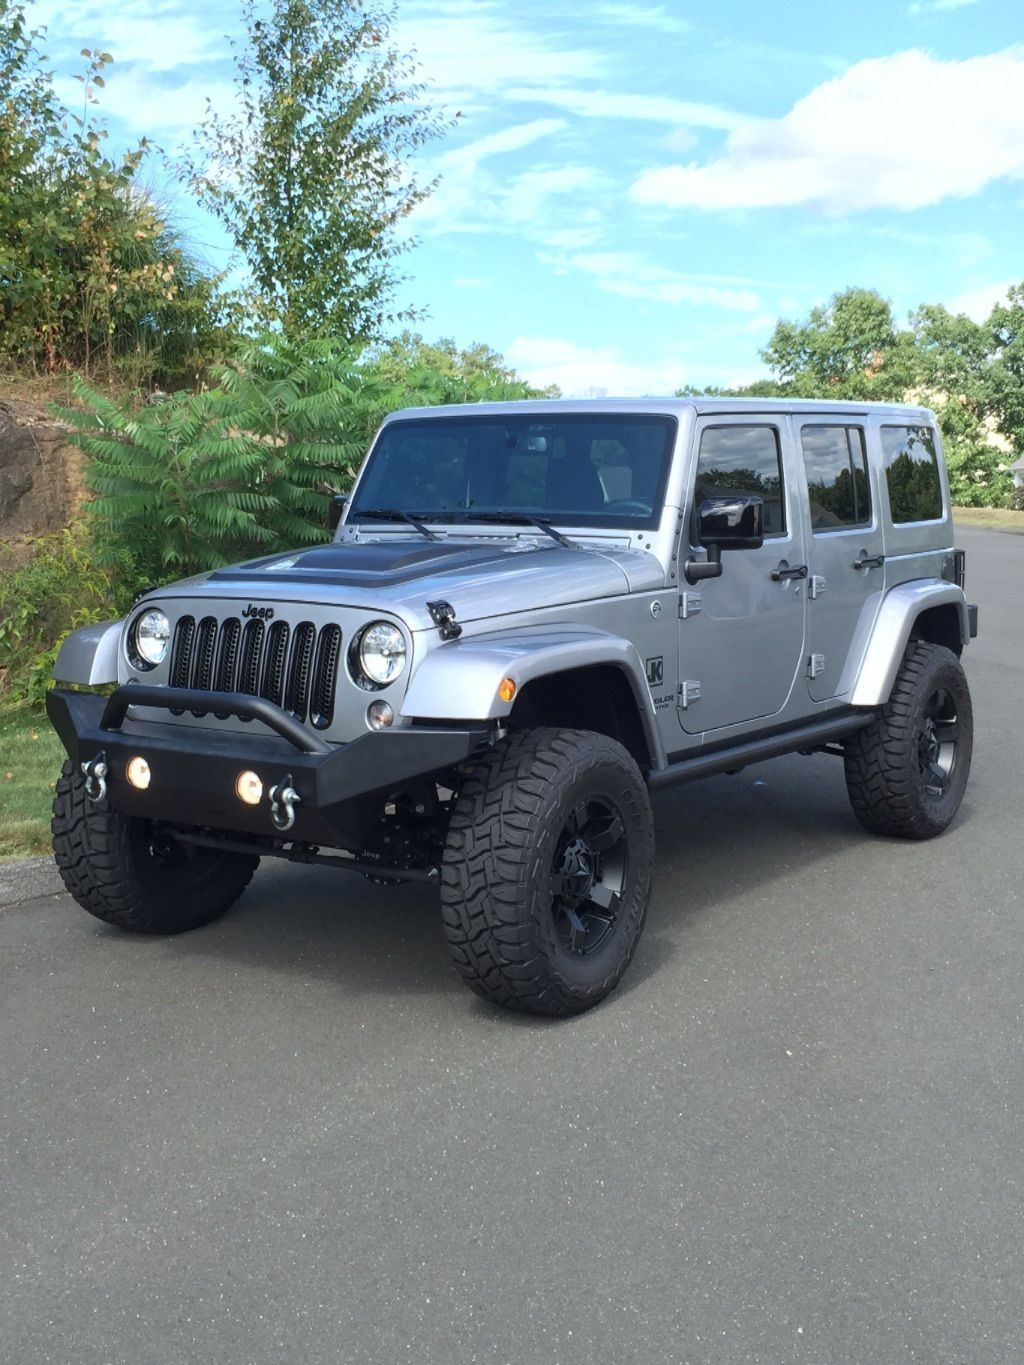 Aev Jeep For Sale >> Very low miles 2015 Jeep Wrangler Altitude offroad for sale